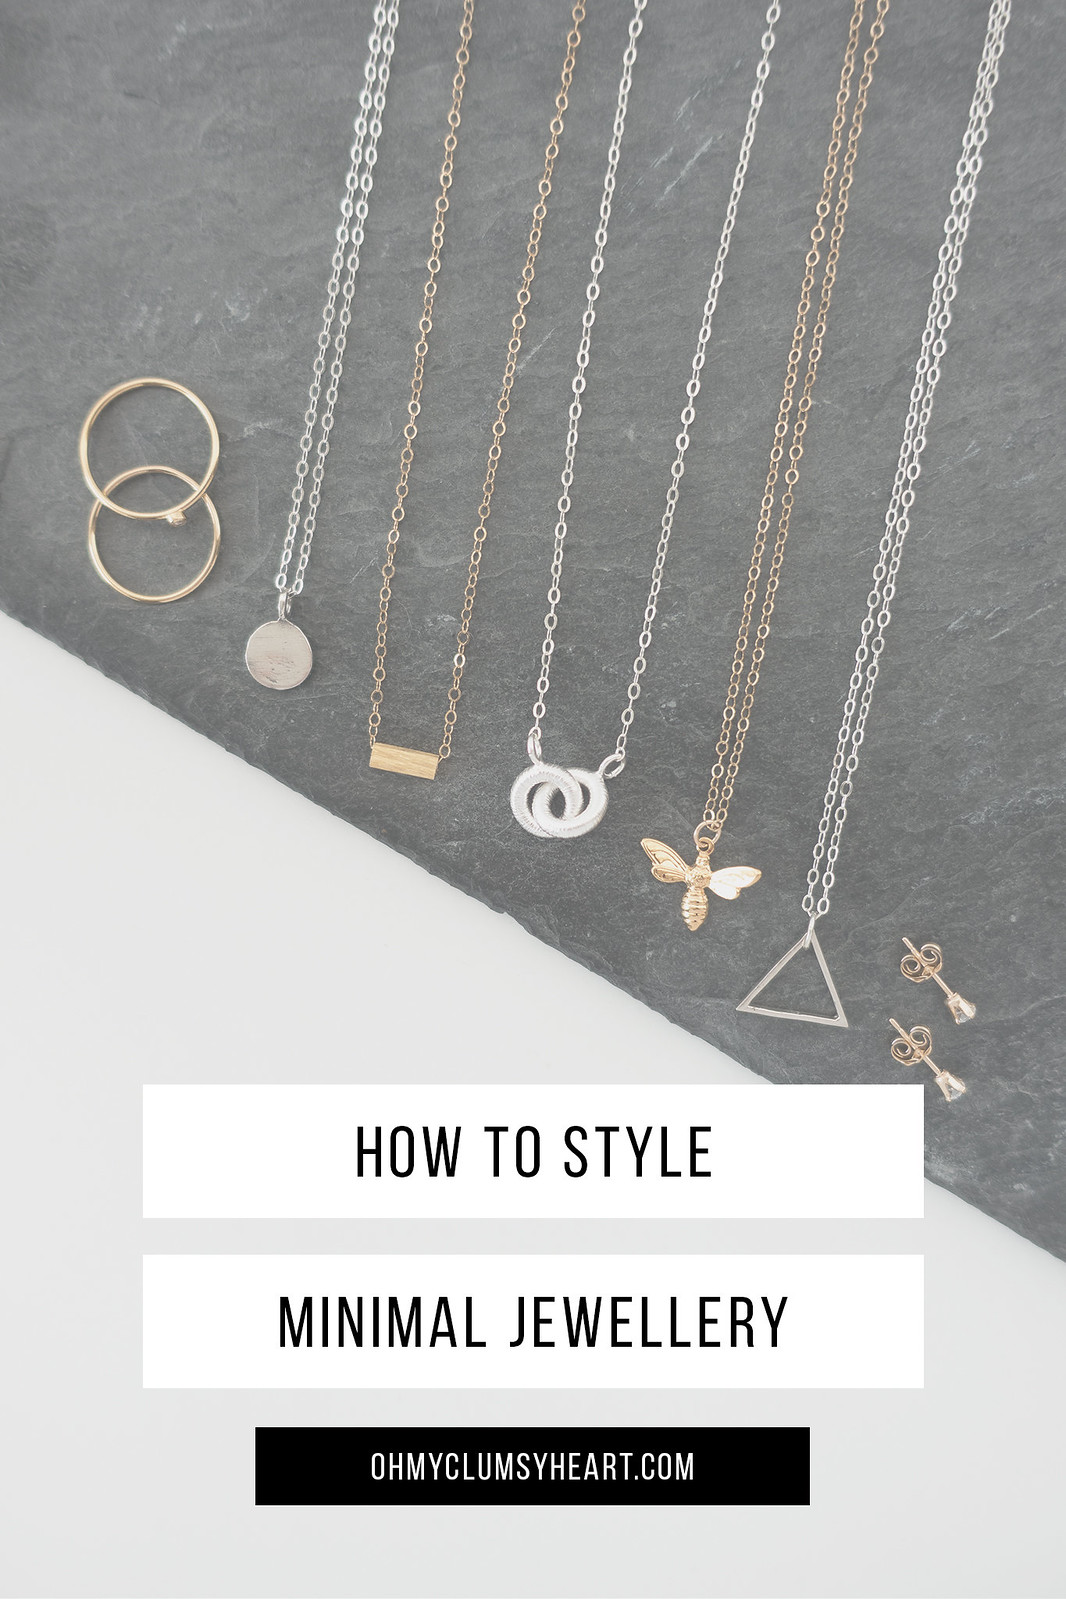 Styling Minimal Jewellery